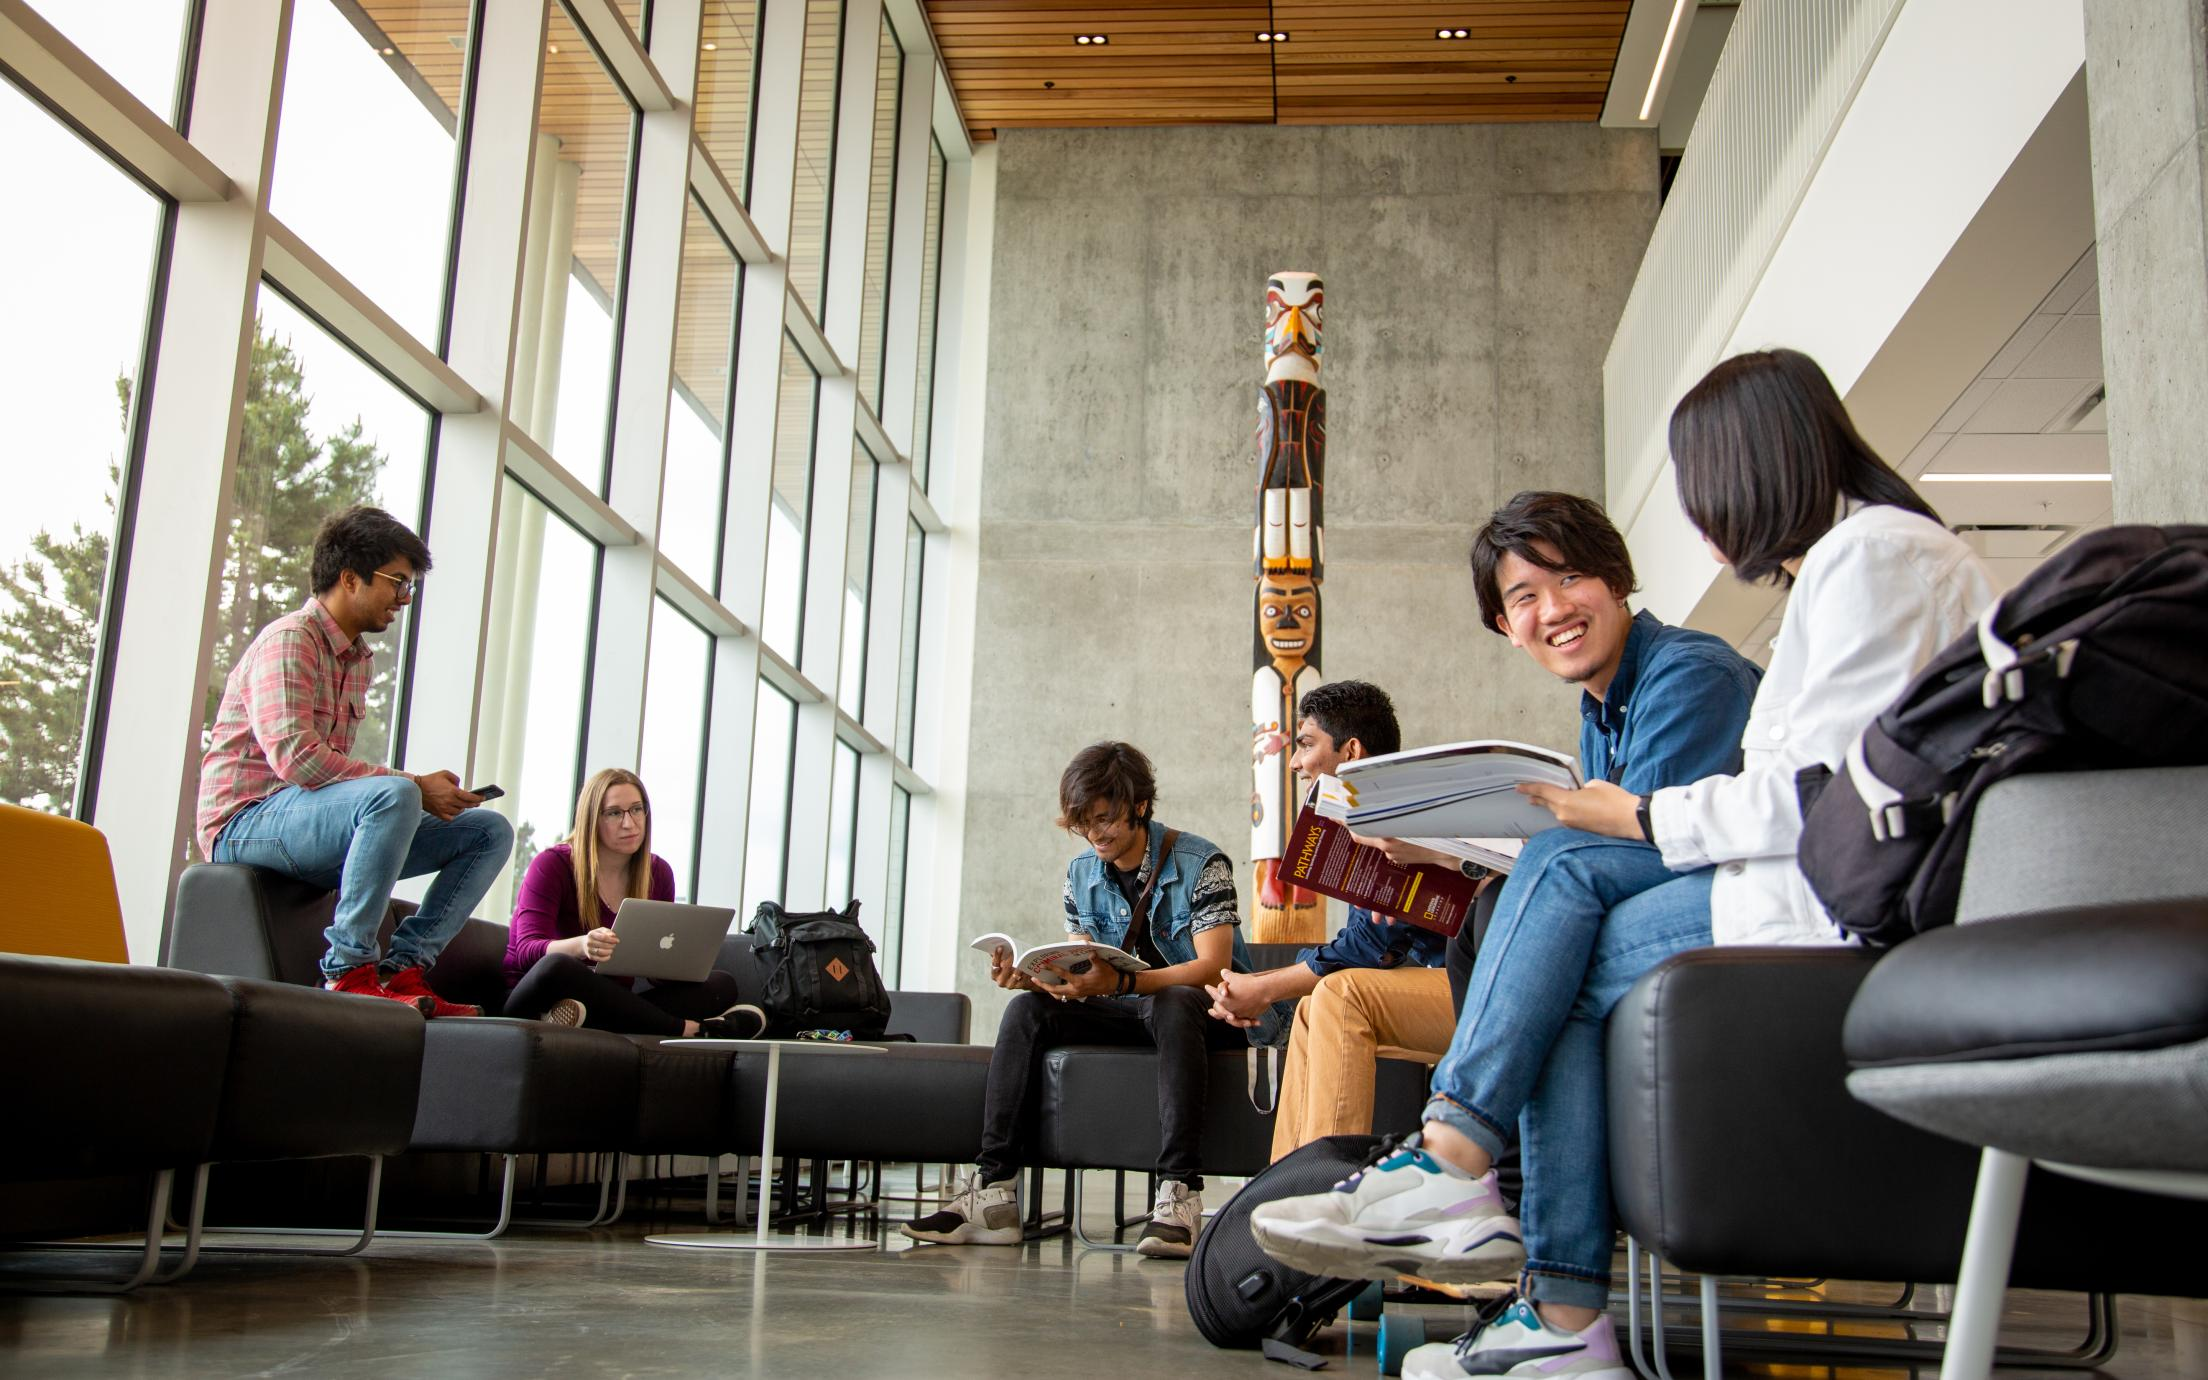 Vancouver Island University students studying together